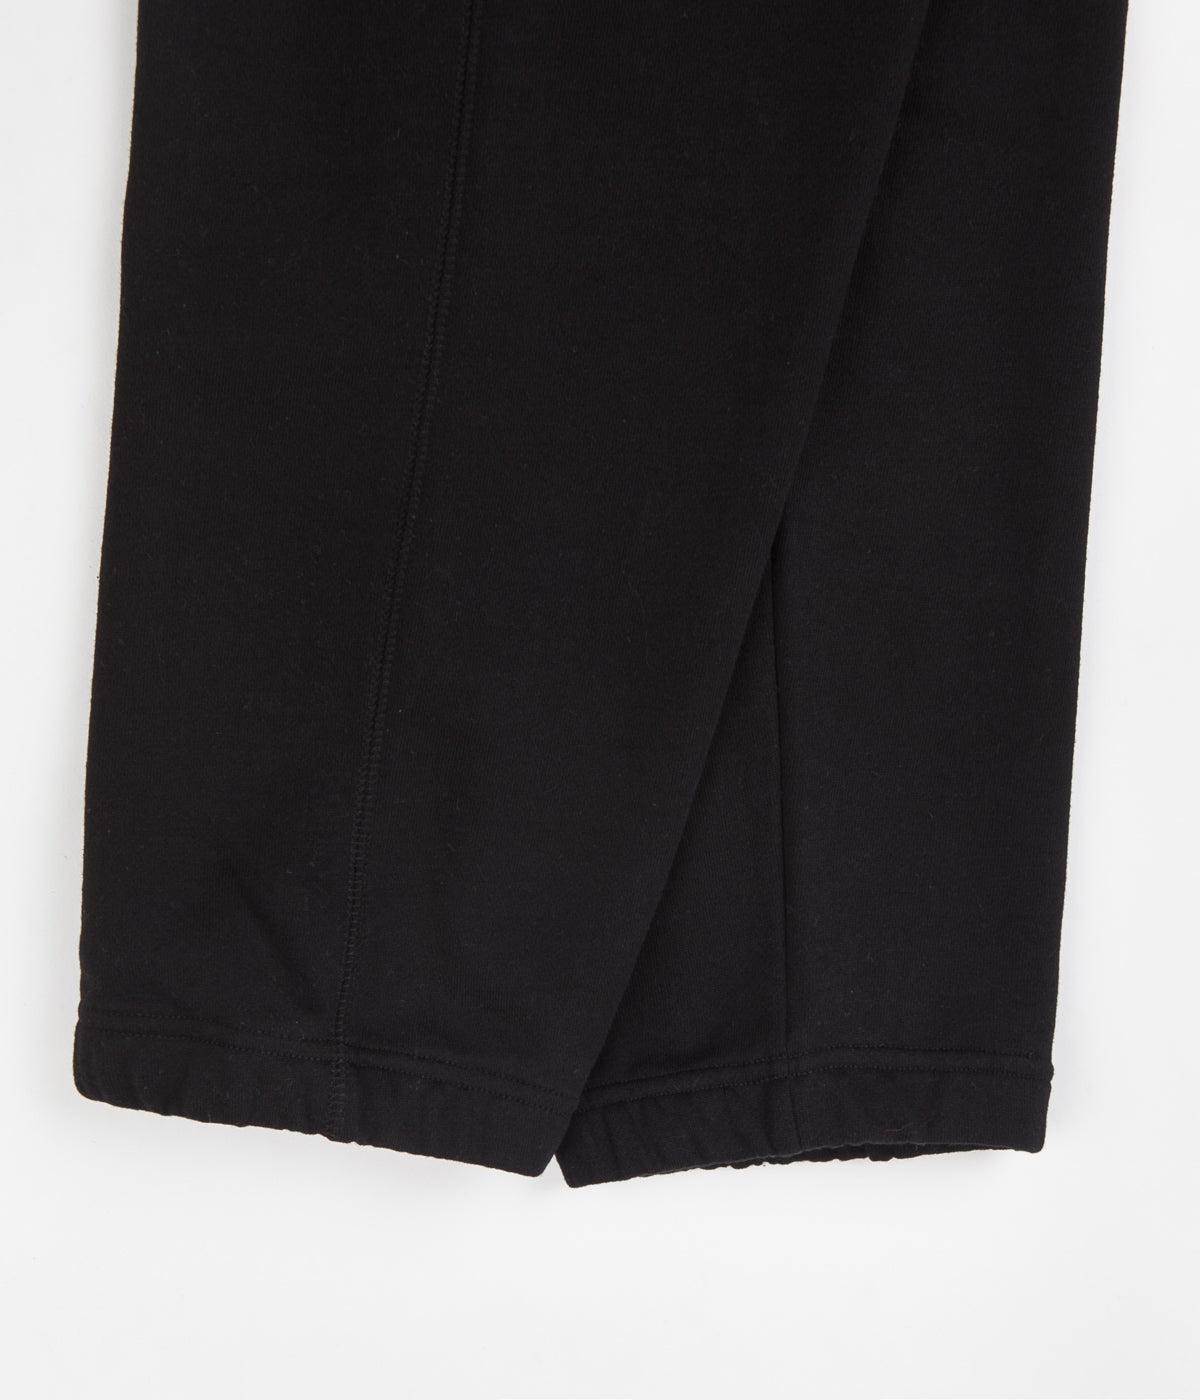 Polar Default Sweatpants - Black